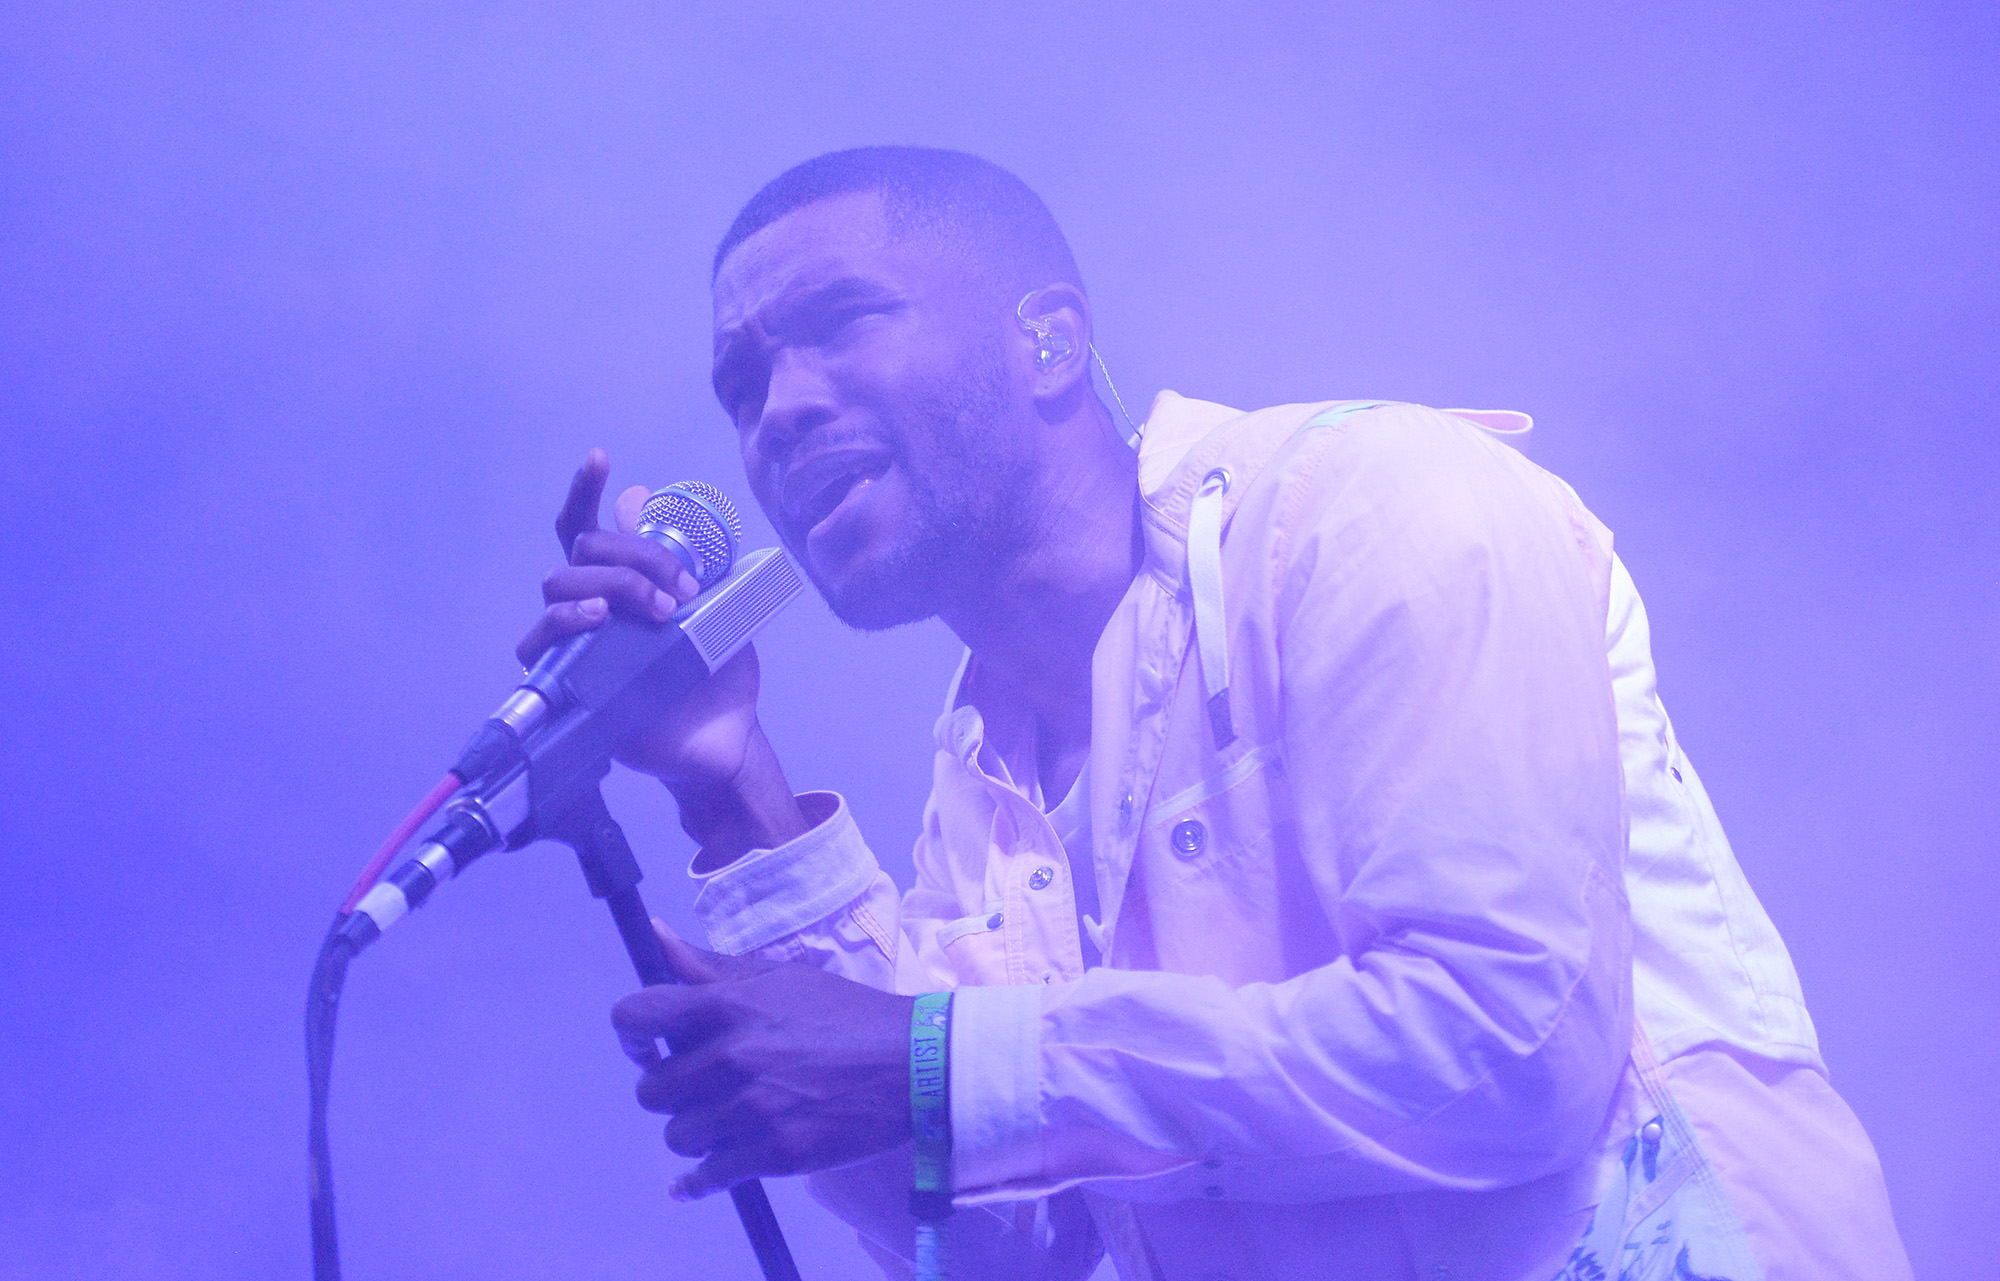 Frank Ocean performs during the 2014 Bonnaroo Music & Arts Festival on June 14, 2014 in Manchester, Tennessee.  (Photo by Jason Merritt/Getty Images)